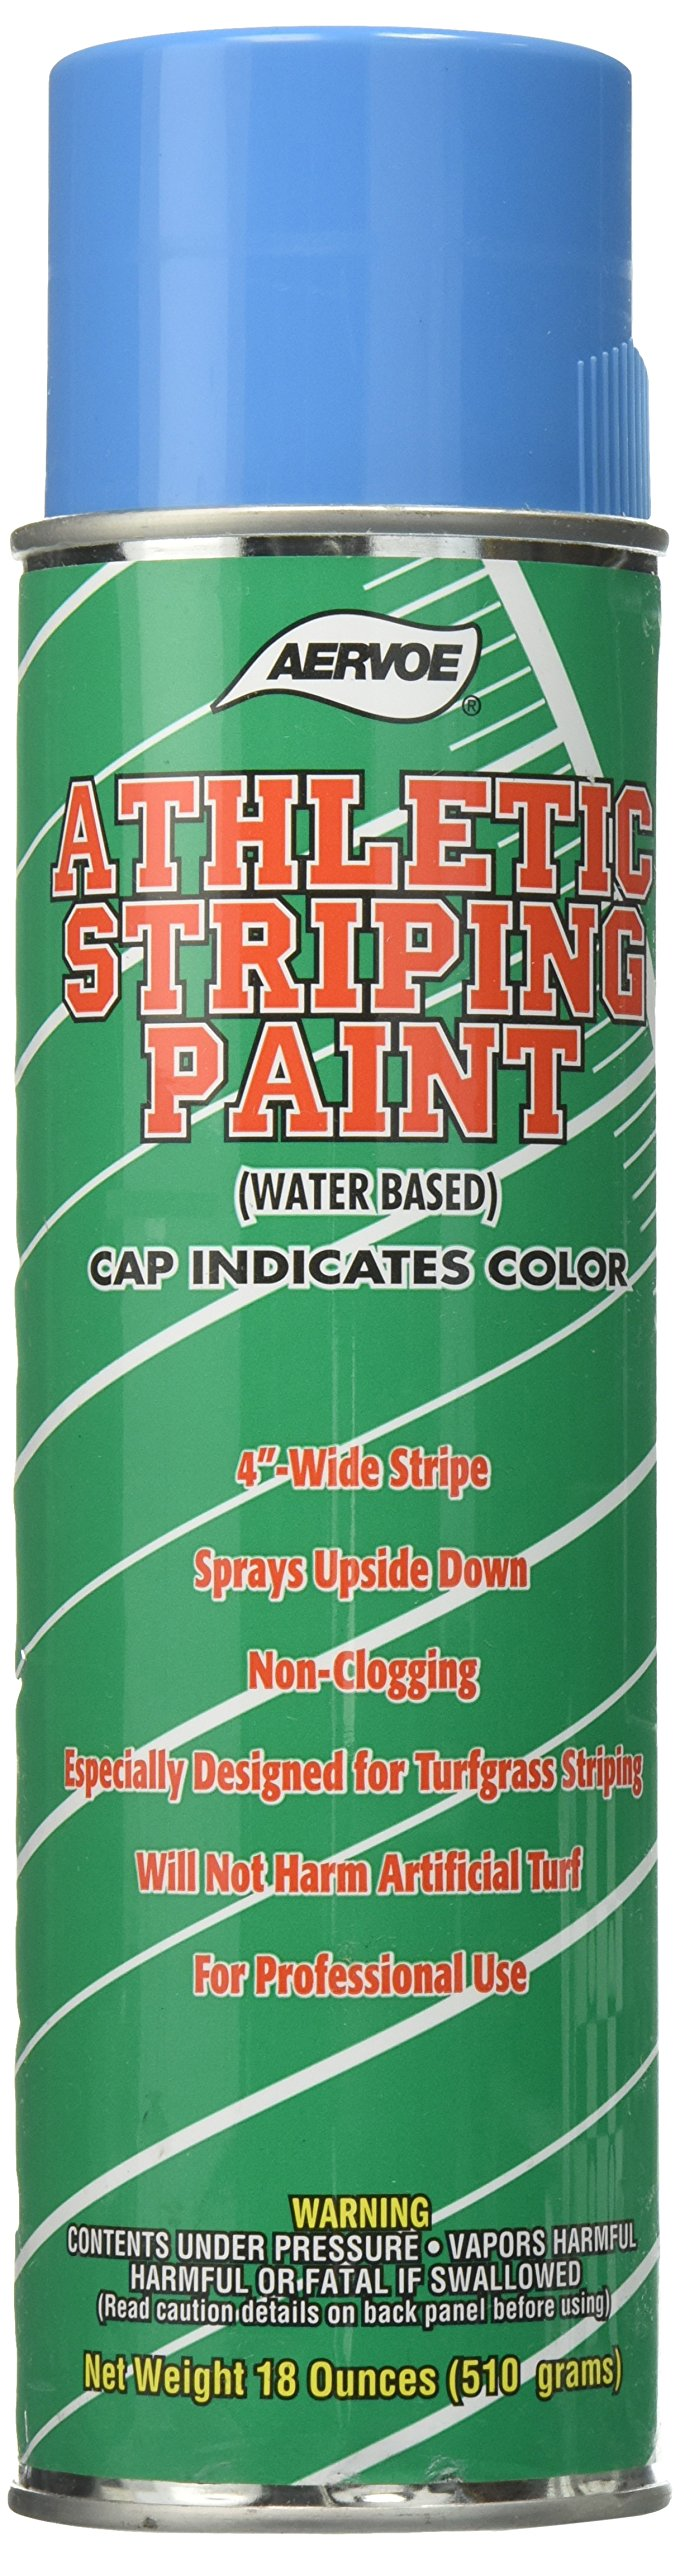 Tapco 2910-00022 Athletic Striping Paint Can, 18 oz Capacity, Blue, For Grass/Turf Marking (Case of 12)